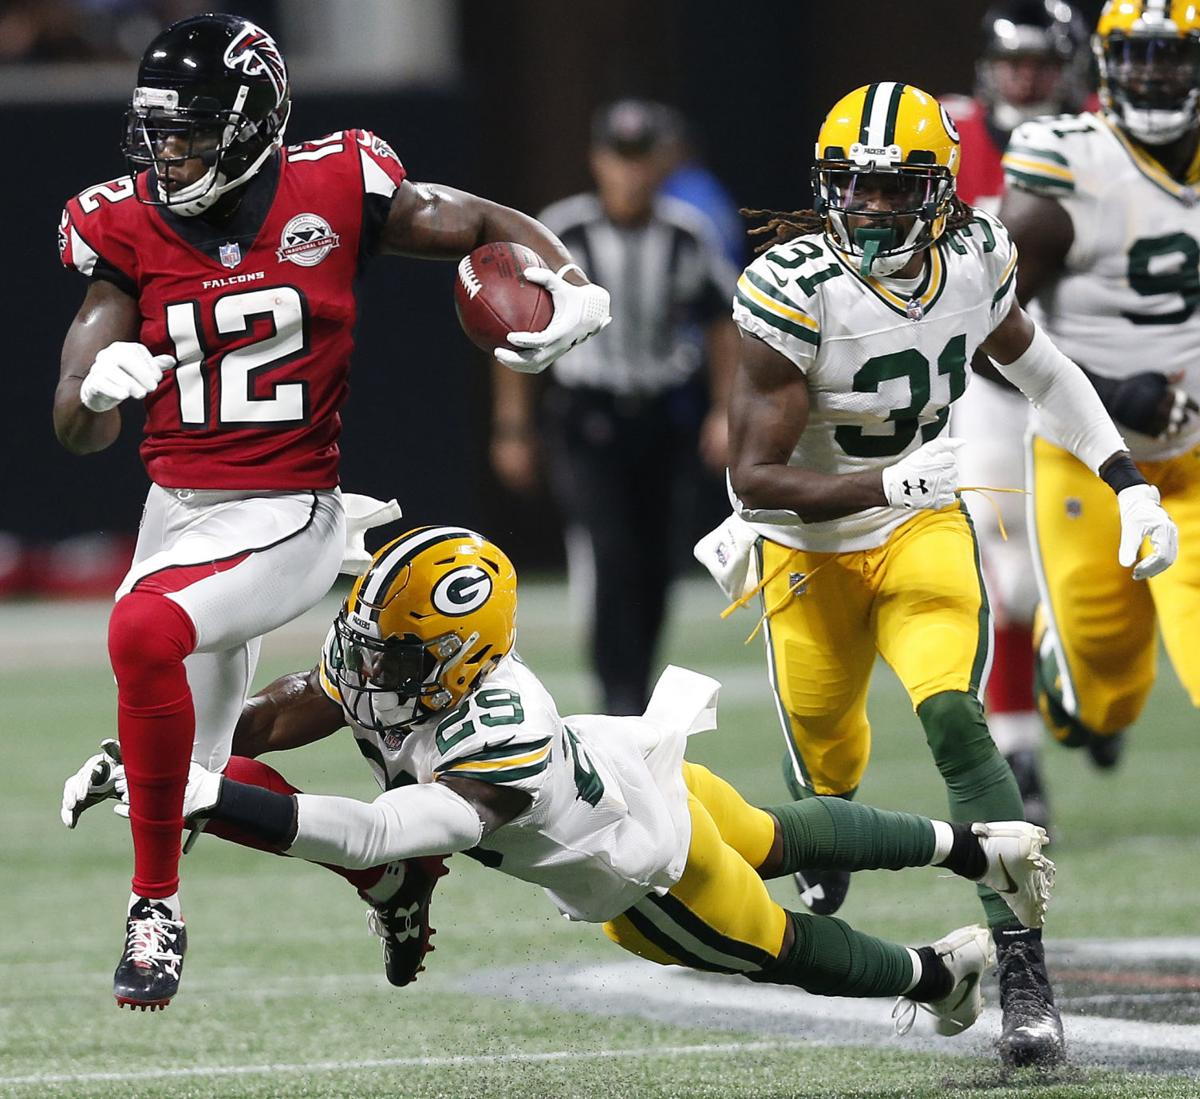 packers cover photo 9-19